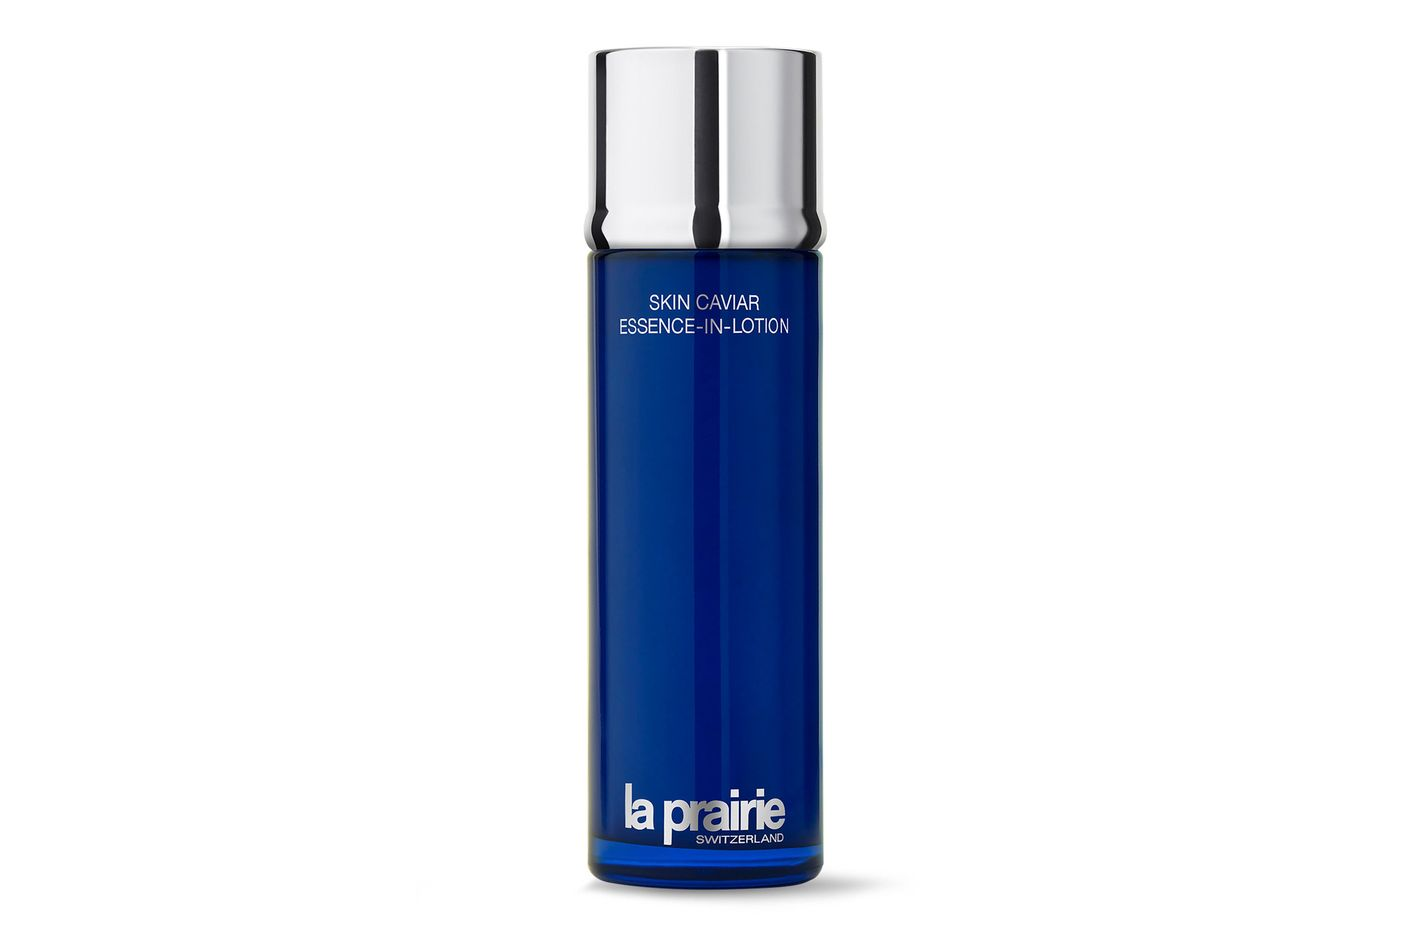 La Prairie Skin Caviar Essence-In-Lotion